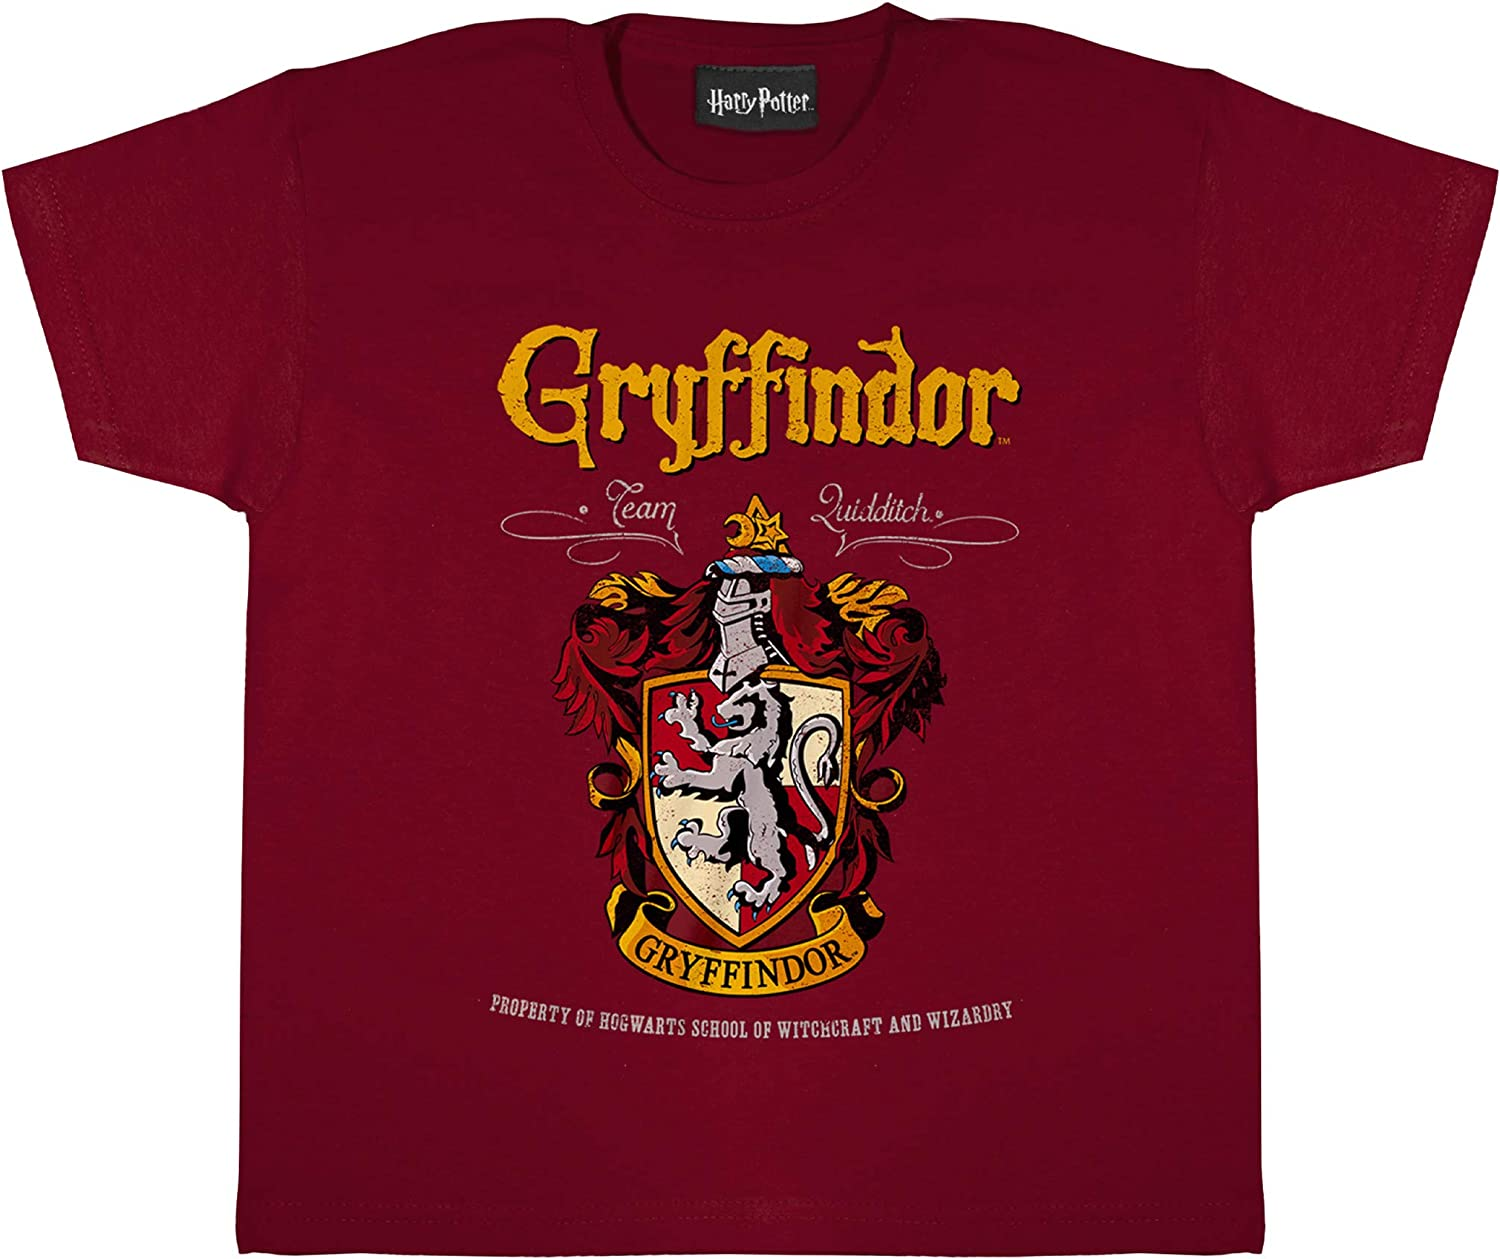 Harry Potter Gryffindor Crest Girls T Shirt Official Merchandise Ages 3 13 Harry Potter Gifts Girls Fashion Top Childrens Clothes Kids Birthday Gift Idea Amazon Co Uk Clothing